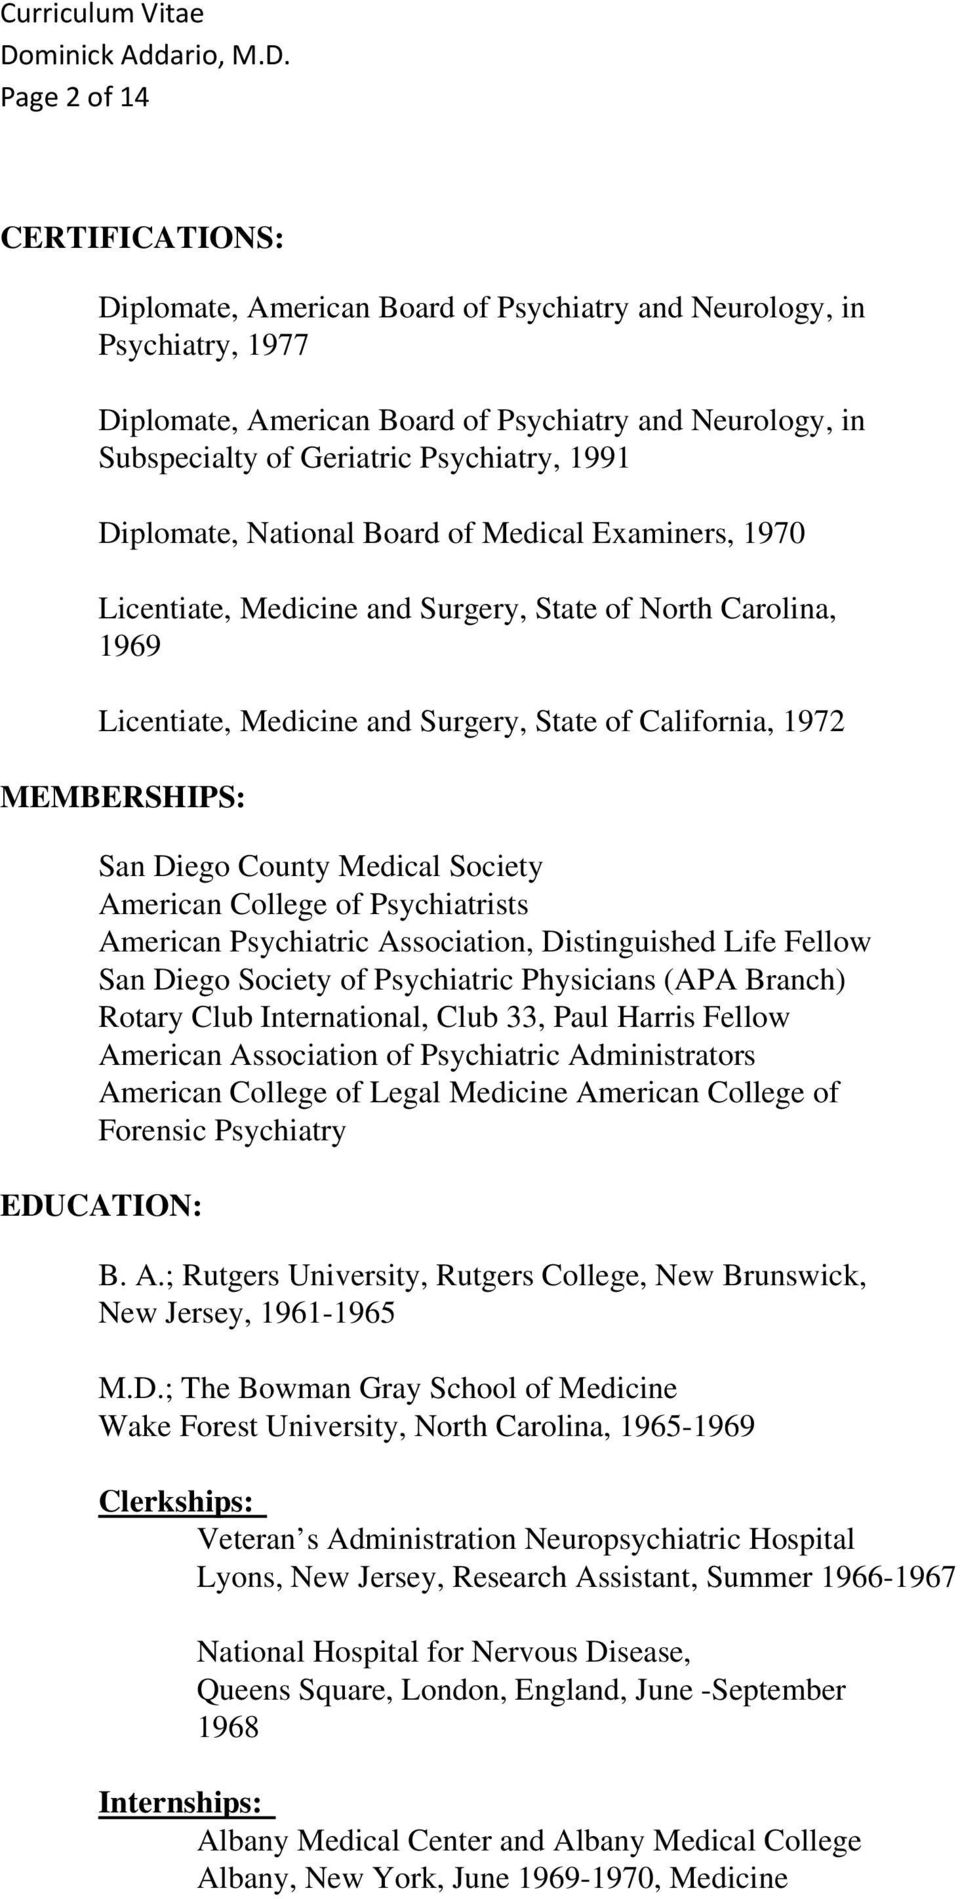 Diego County Medical Society American College of Psychiatrists American Psychiatric Association, Distinguished Life Fellow San Diego Society of Psychiatric Physicians (APA Branch) Rotary Club